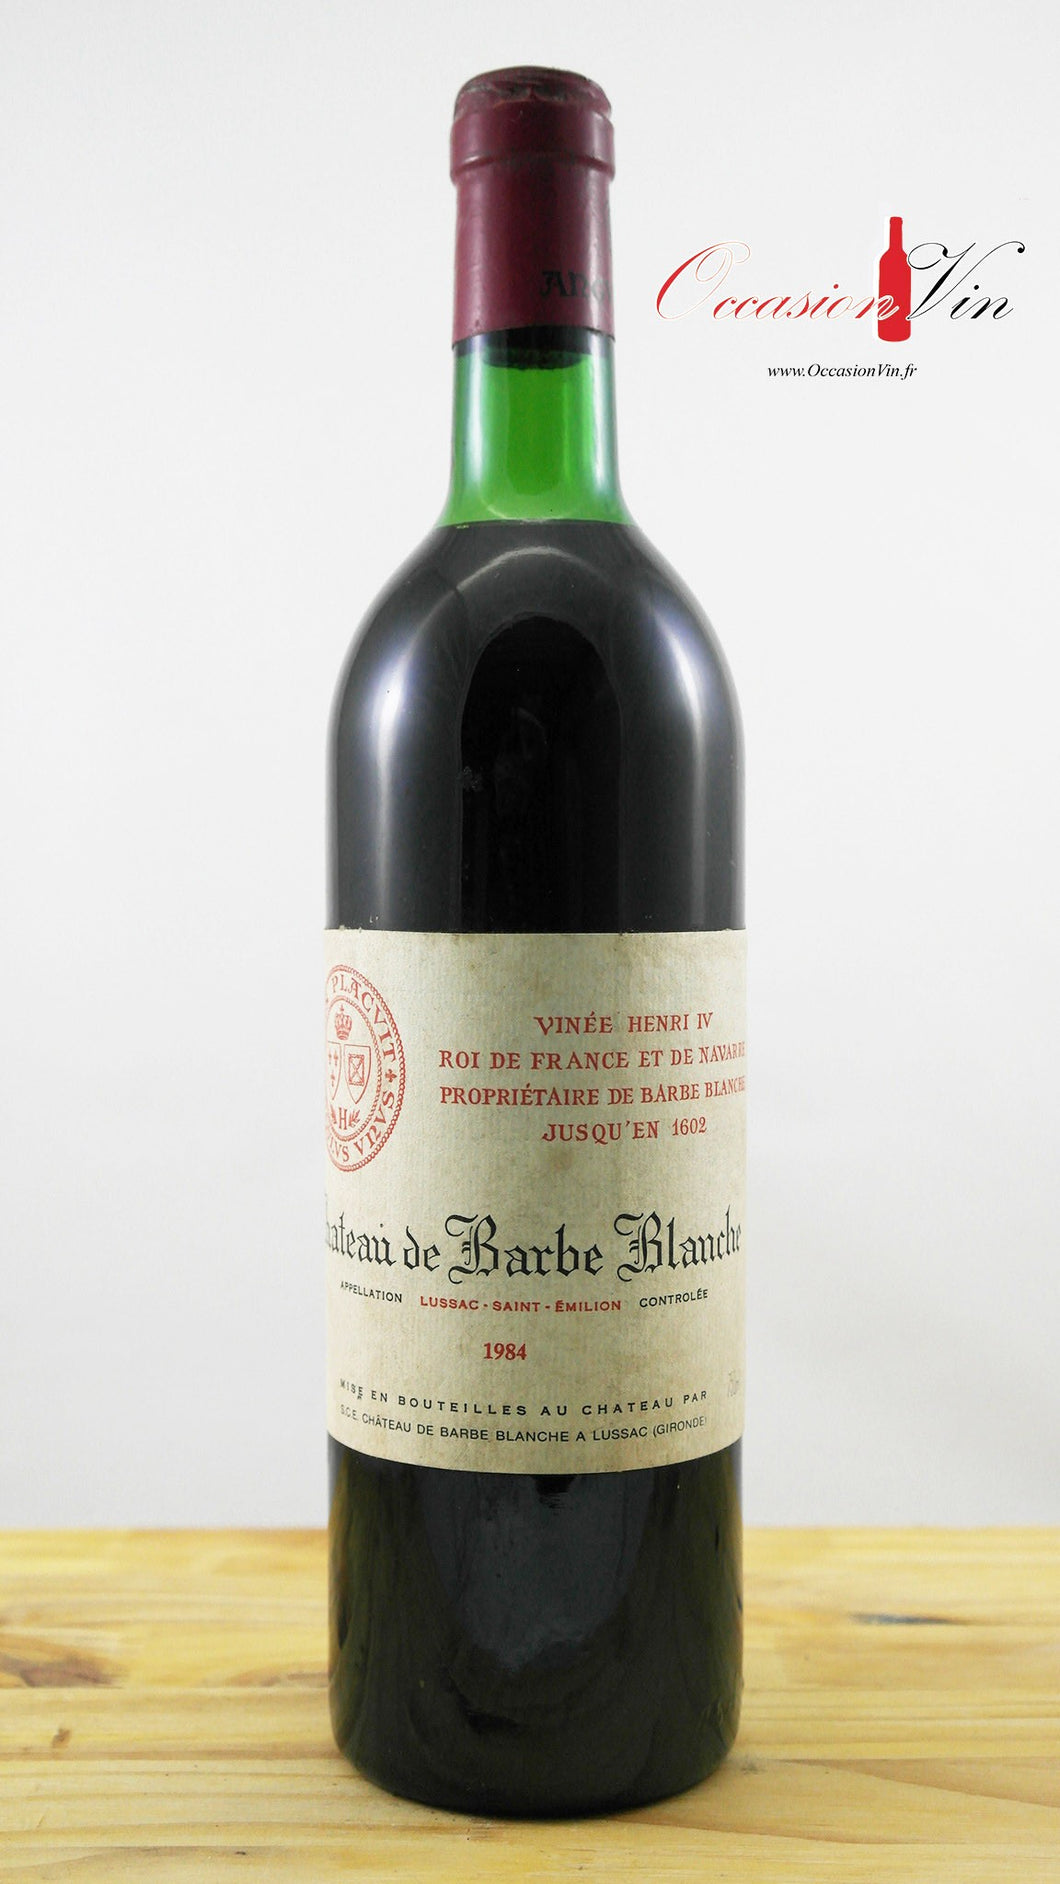 Château Barbe Blanche Vin 1984